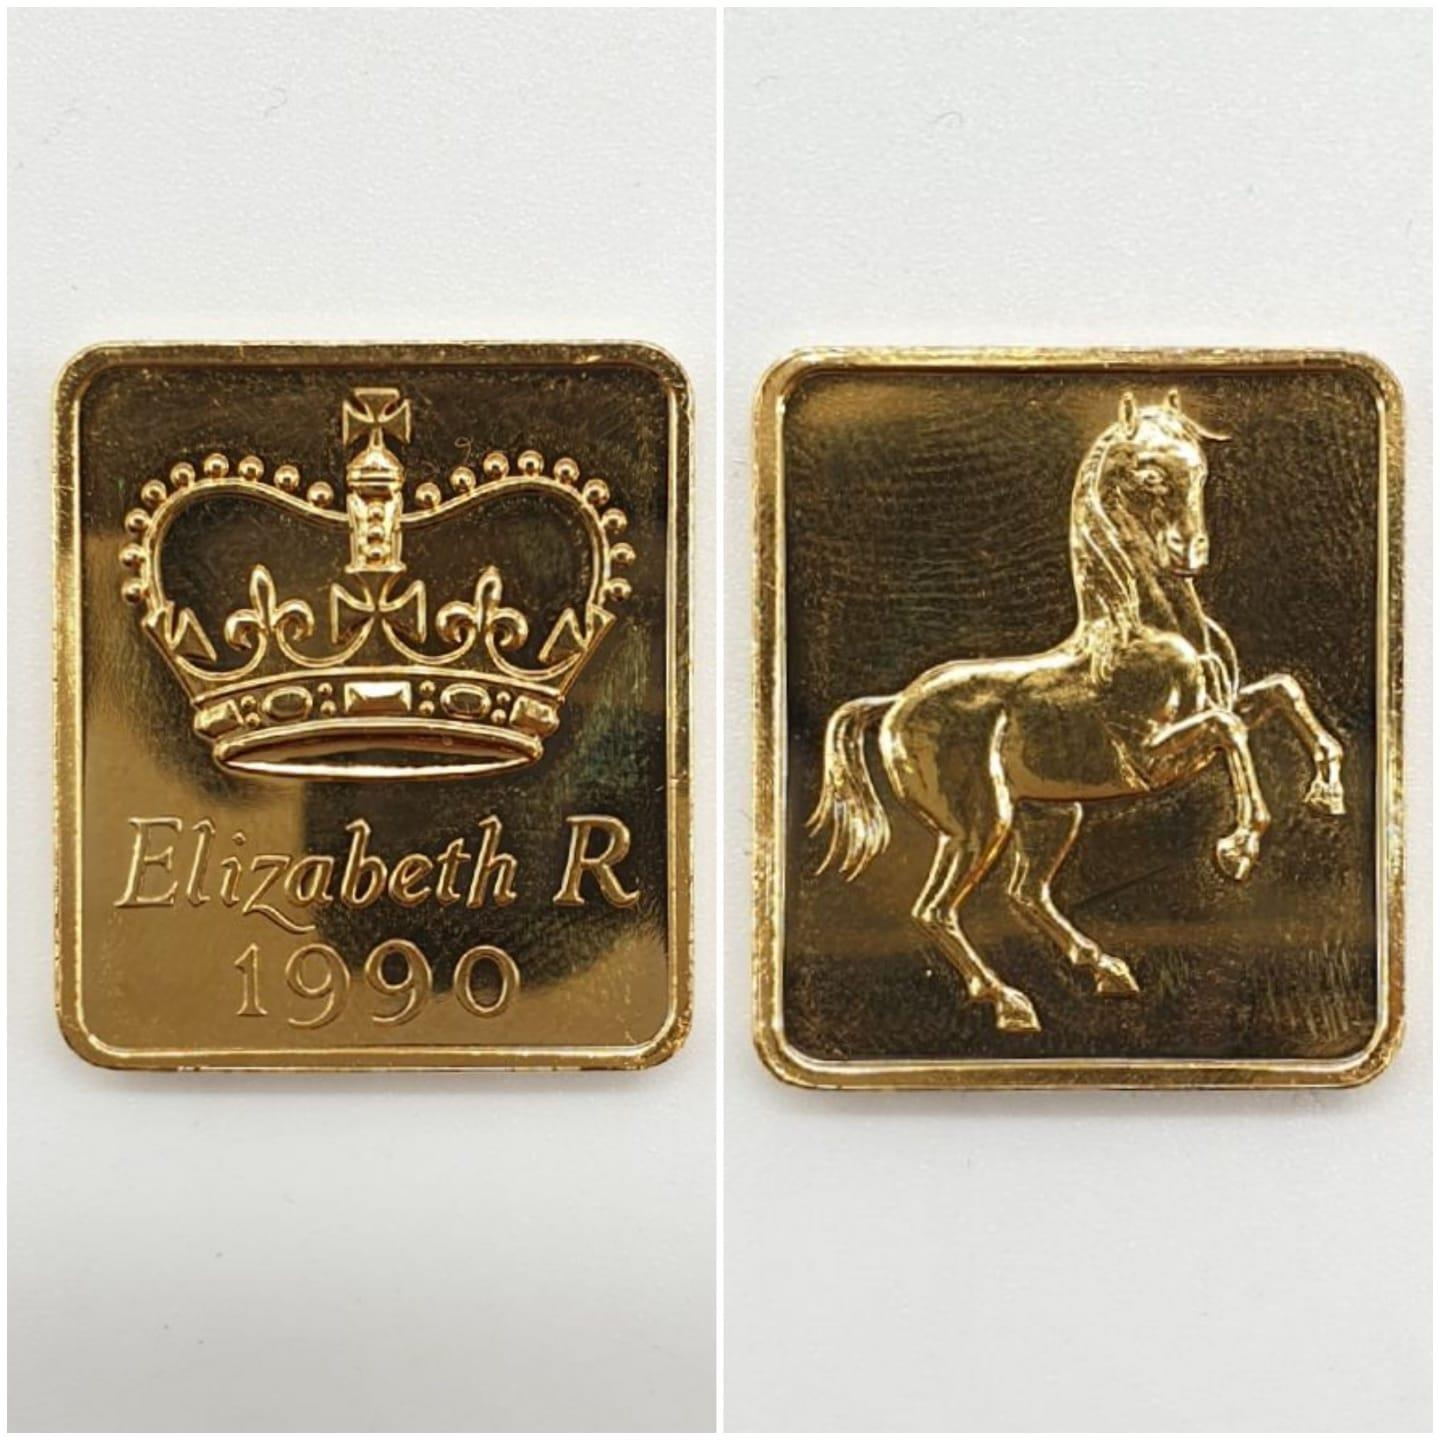 1990 UK GOLD PROOF SOVEREIGN 4 COIN COLLECTION TO INCLUDE A £5 COIN, A DOUBLE SOVEREIGN COIN, A - Image 5 of 5